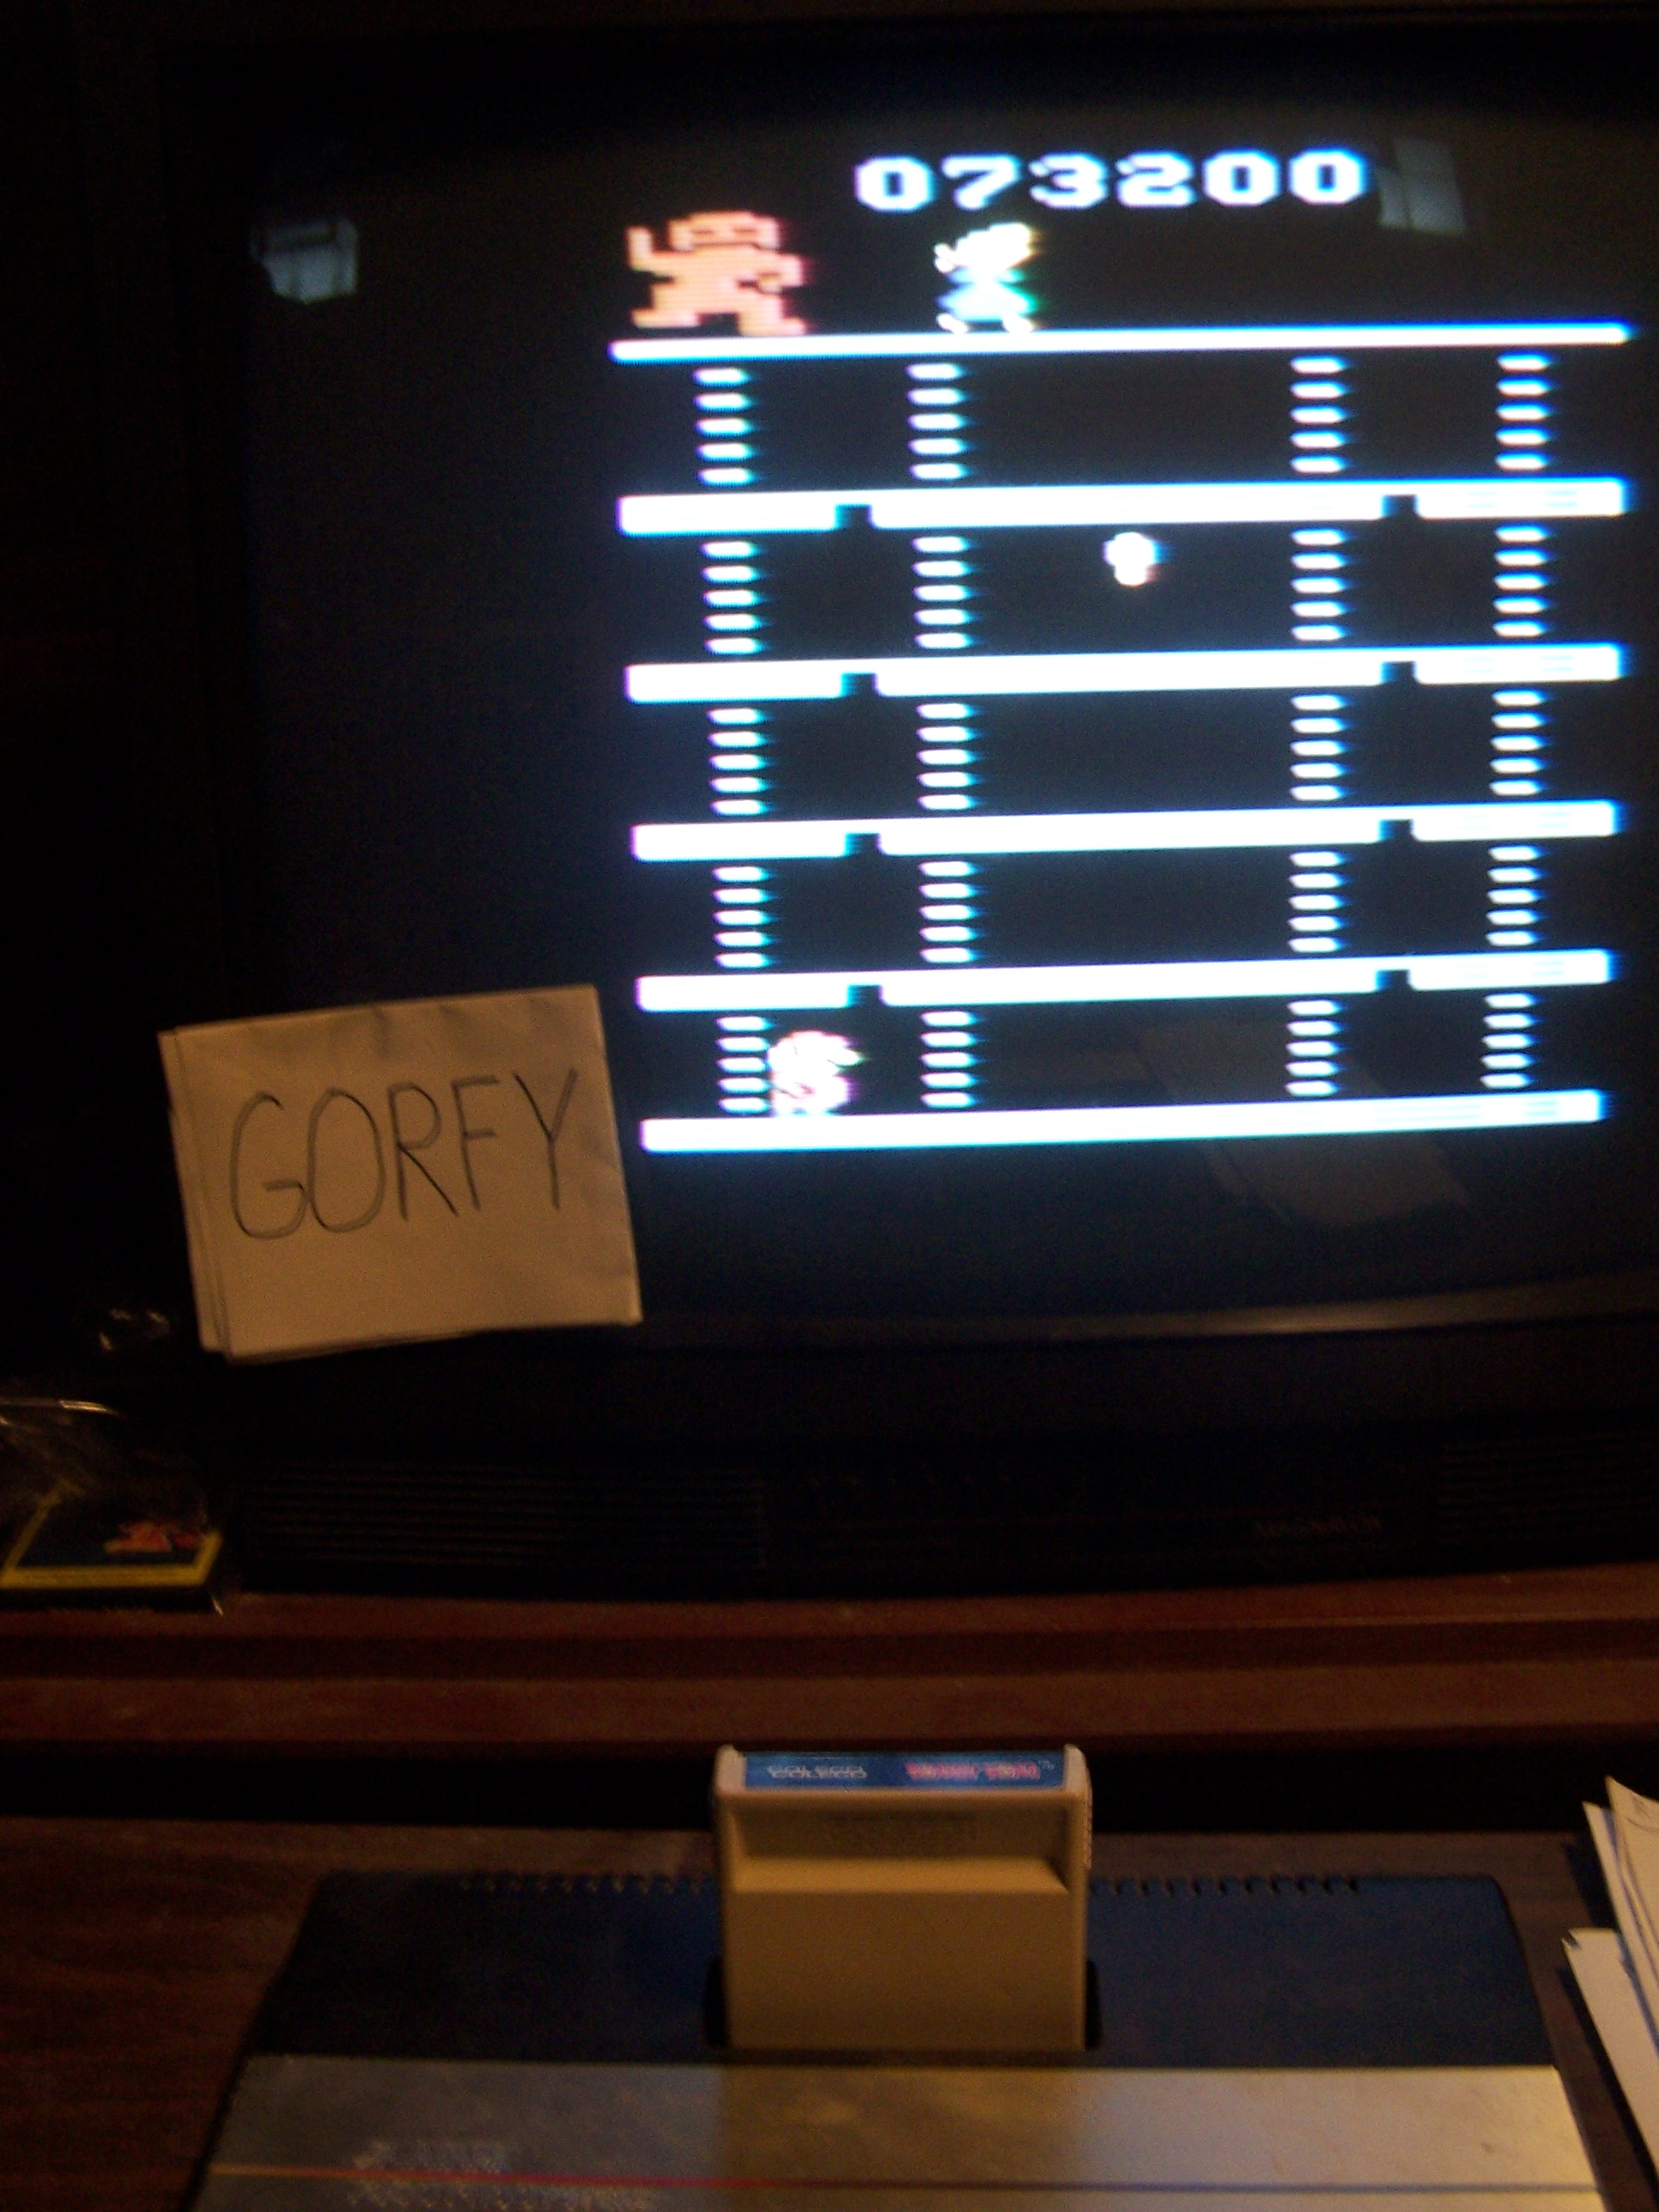 Gorfy: Donkey Kong (Atari 2600 Novice/B) 73,200 points on 2016-01-30 07:41:04